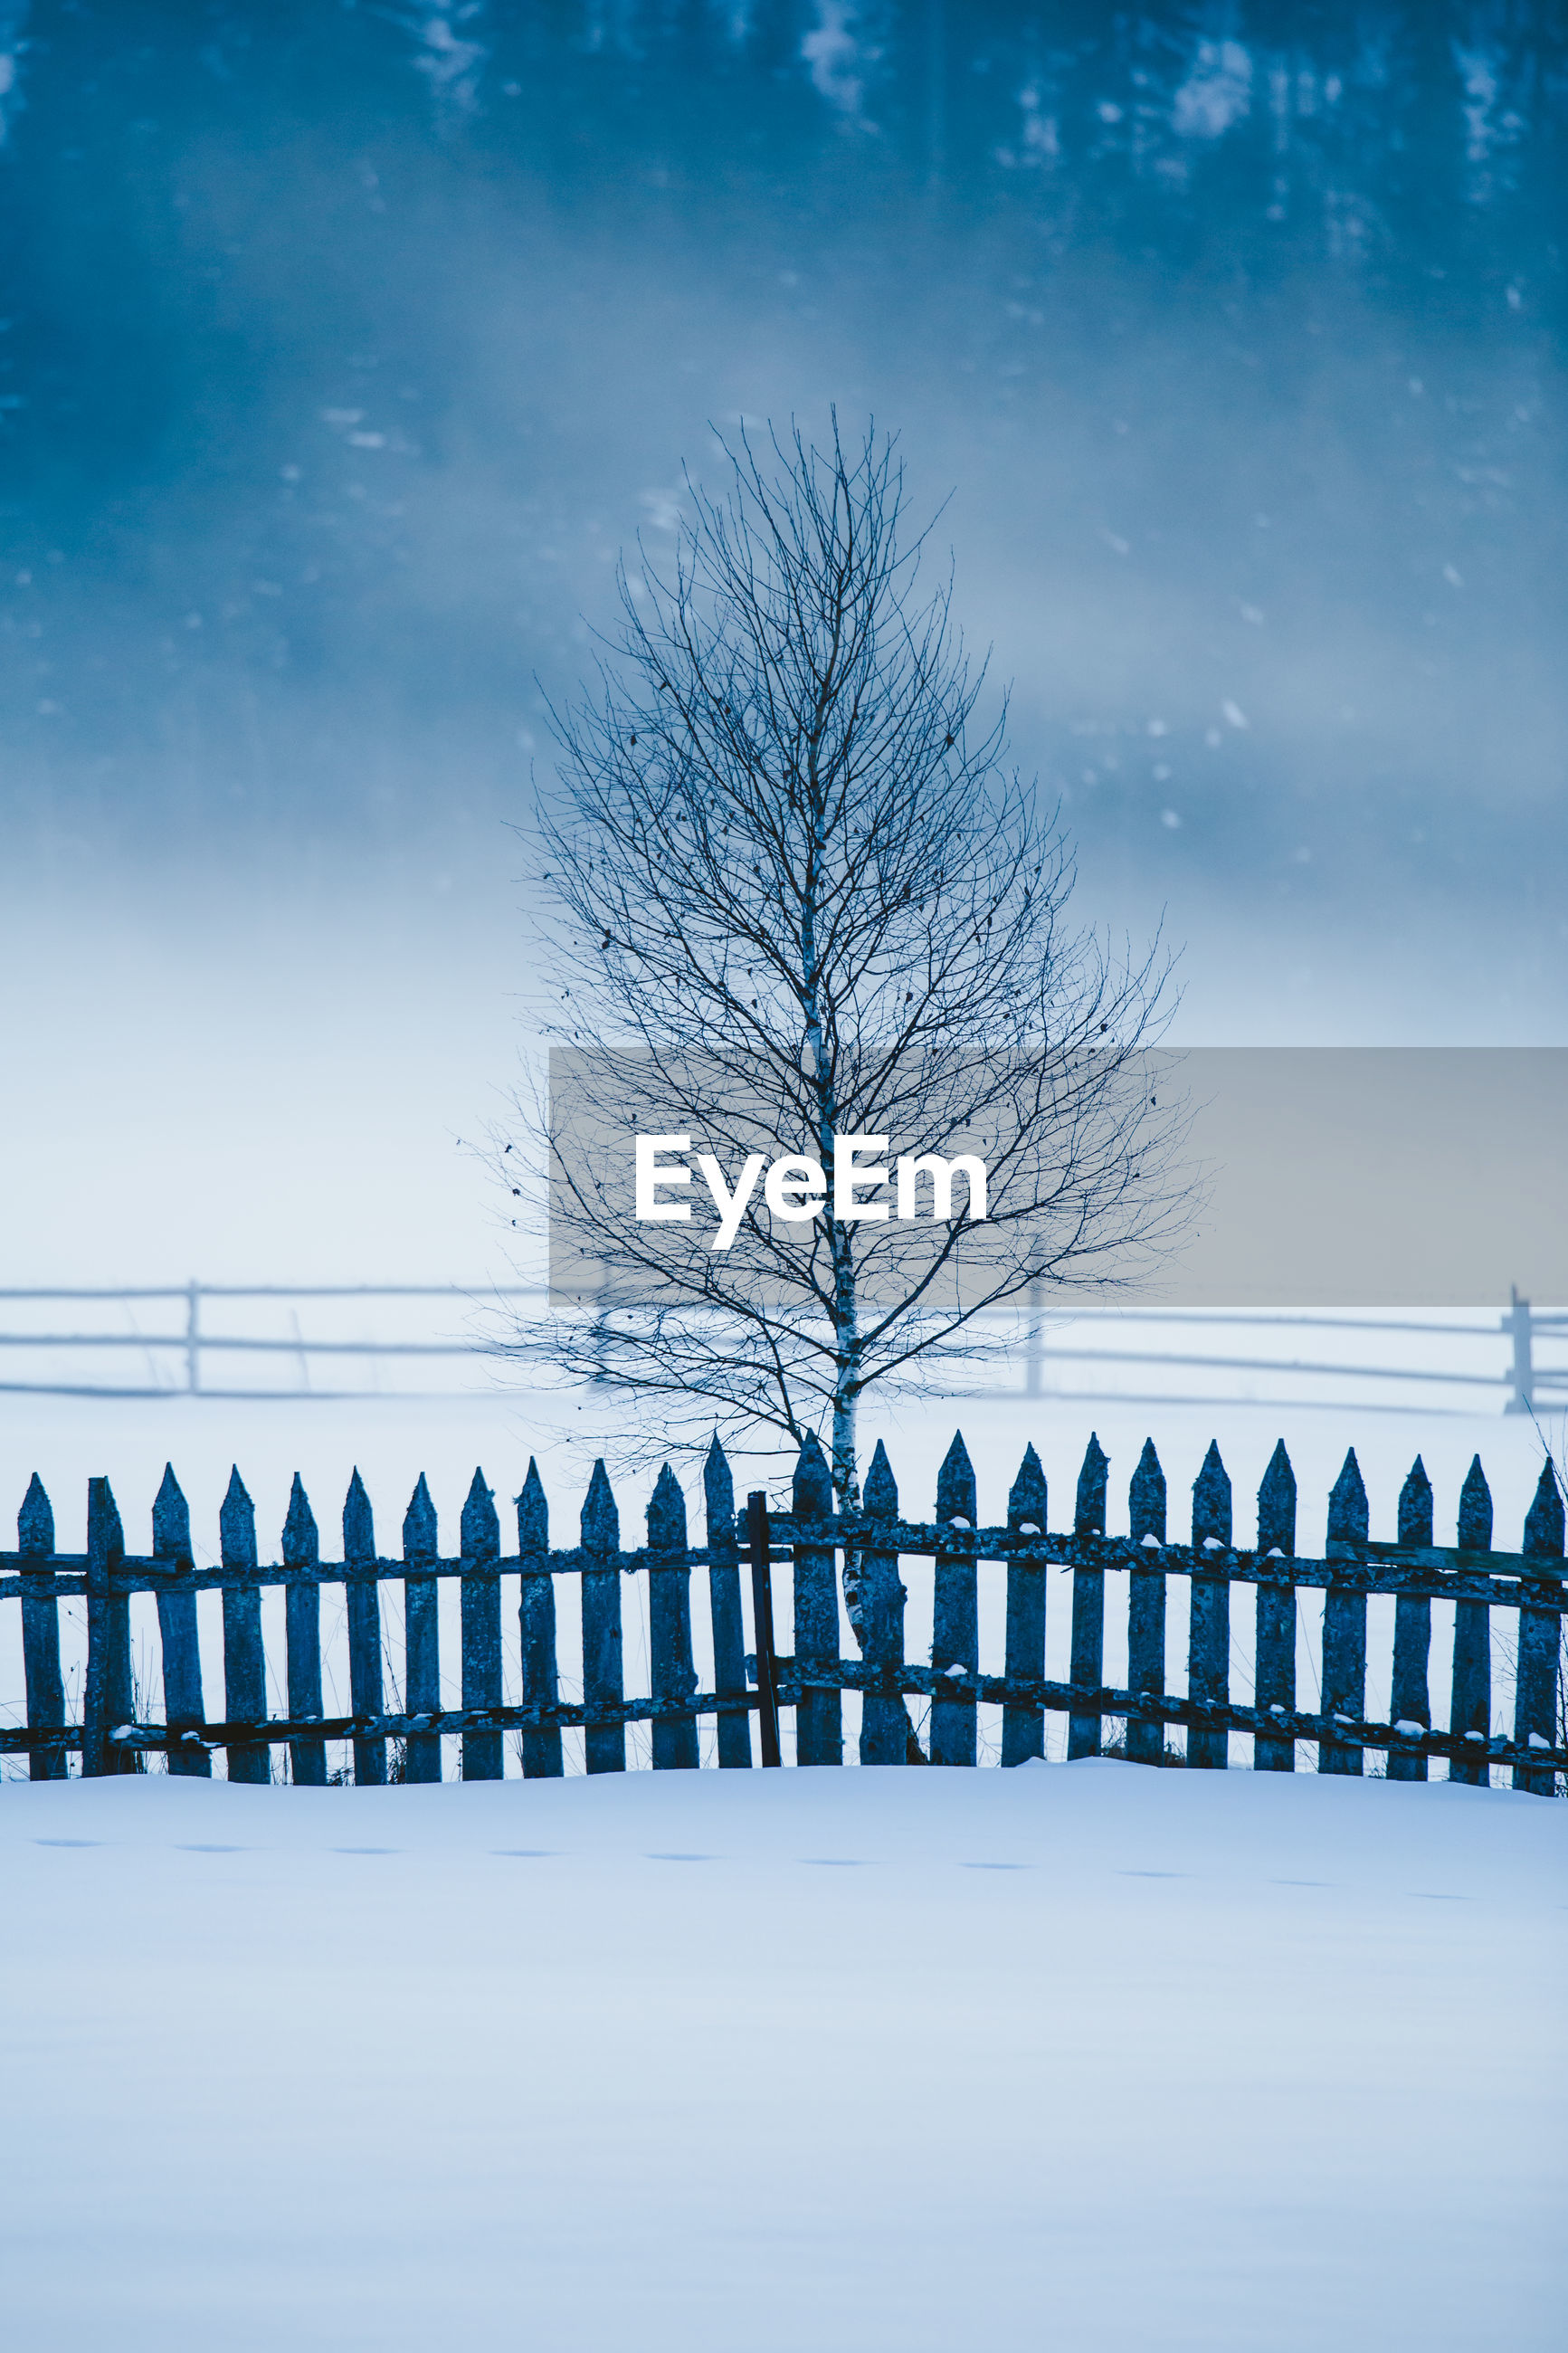 BARE TREE IN SNOW AGAINST SKY